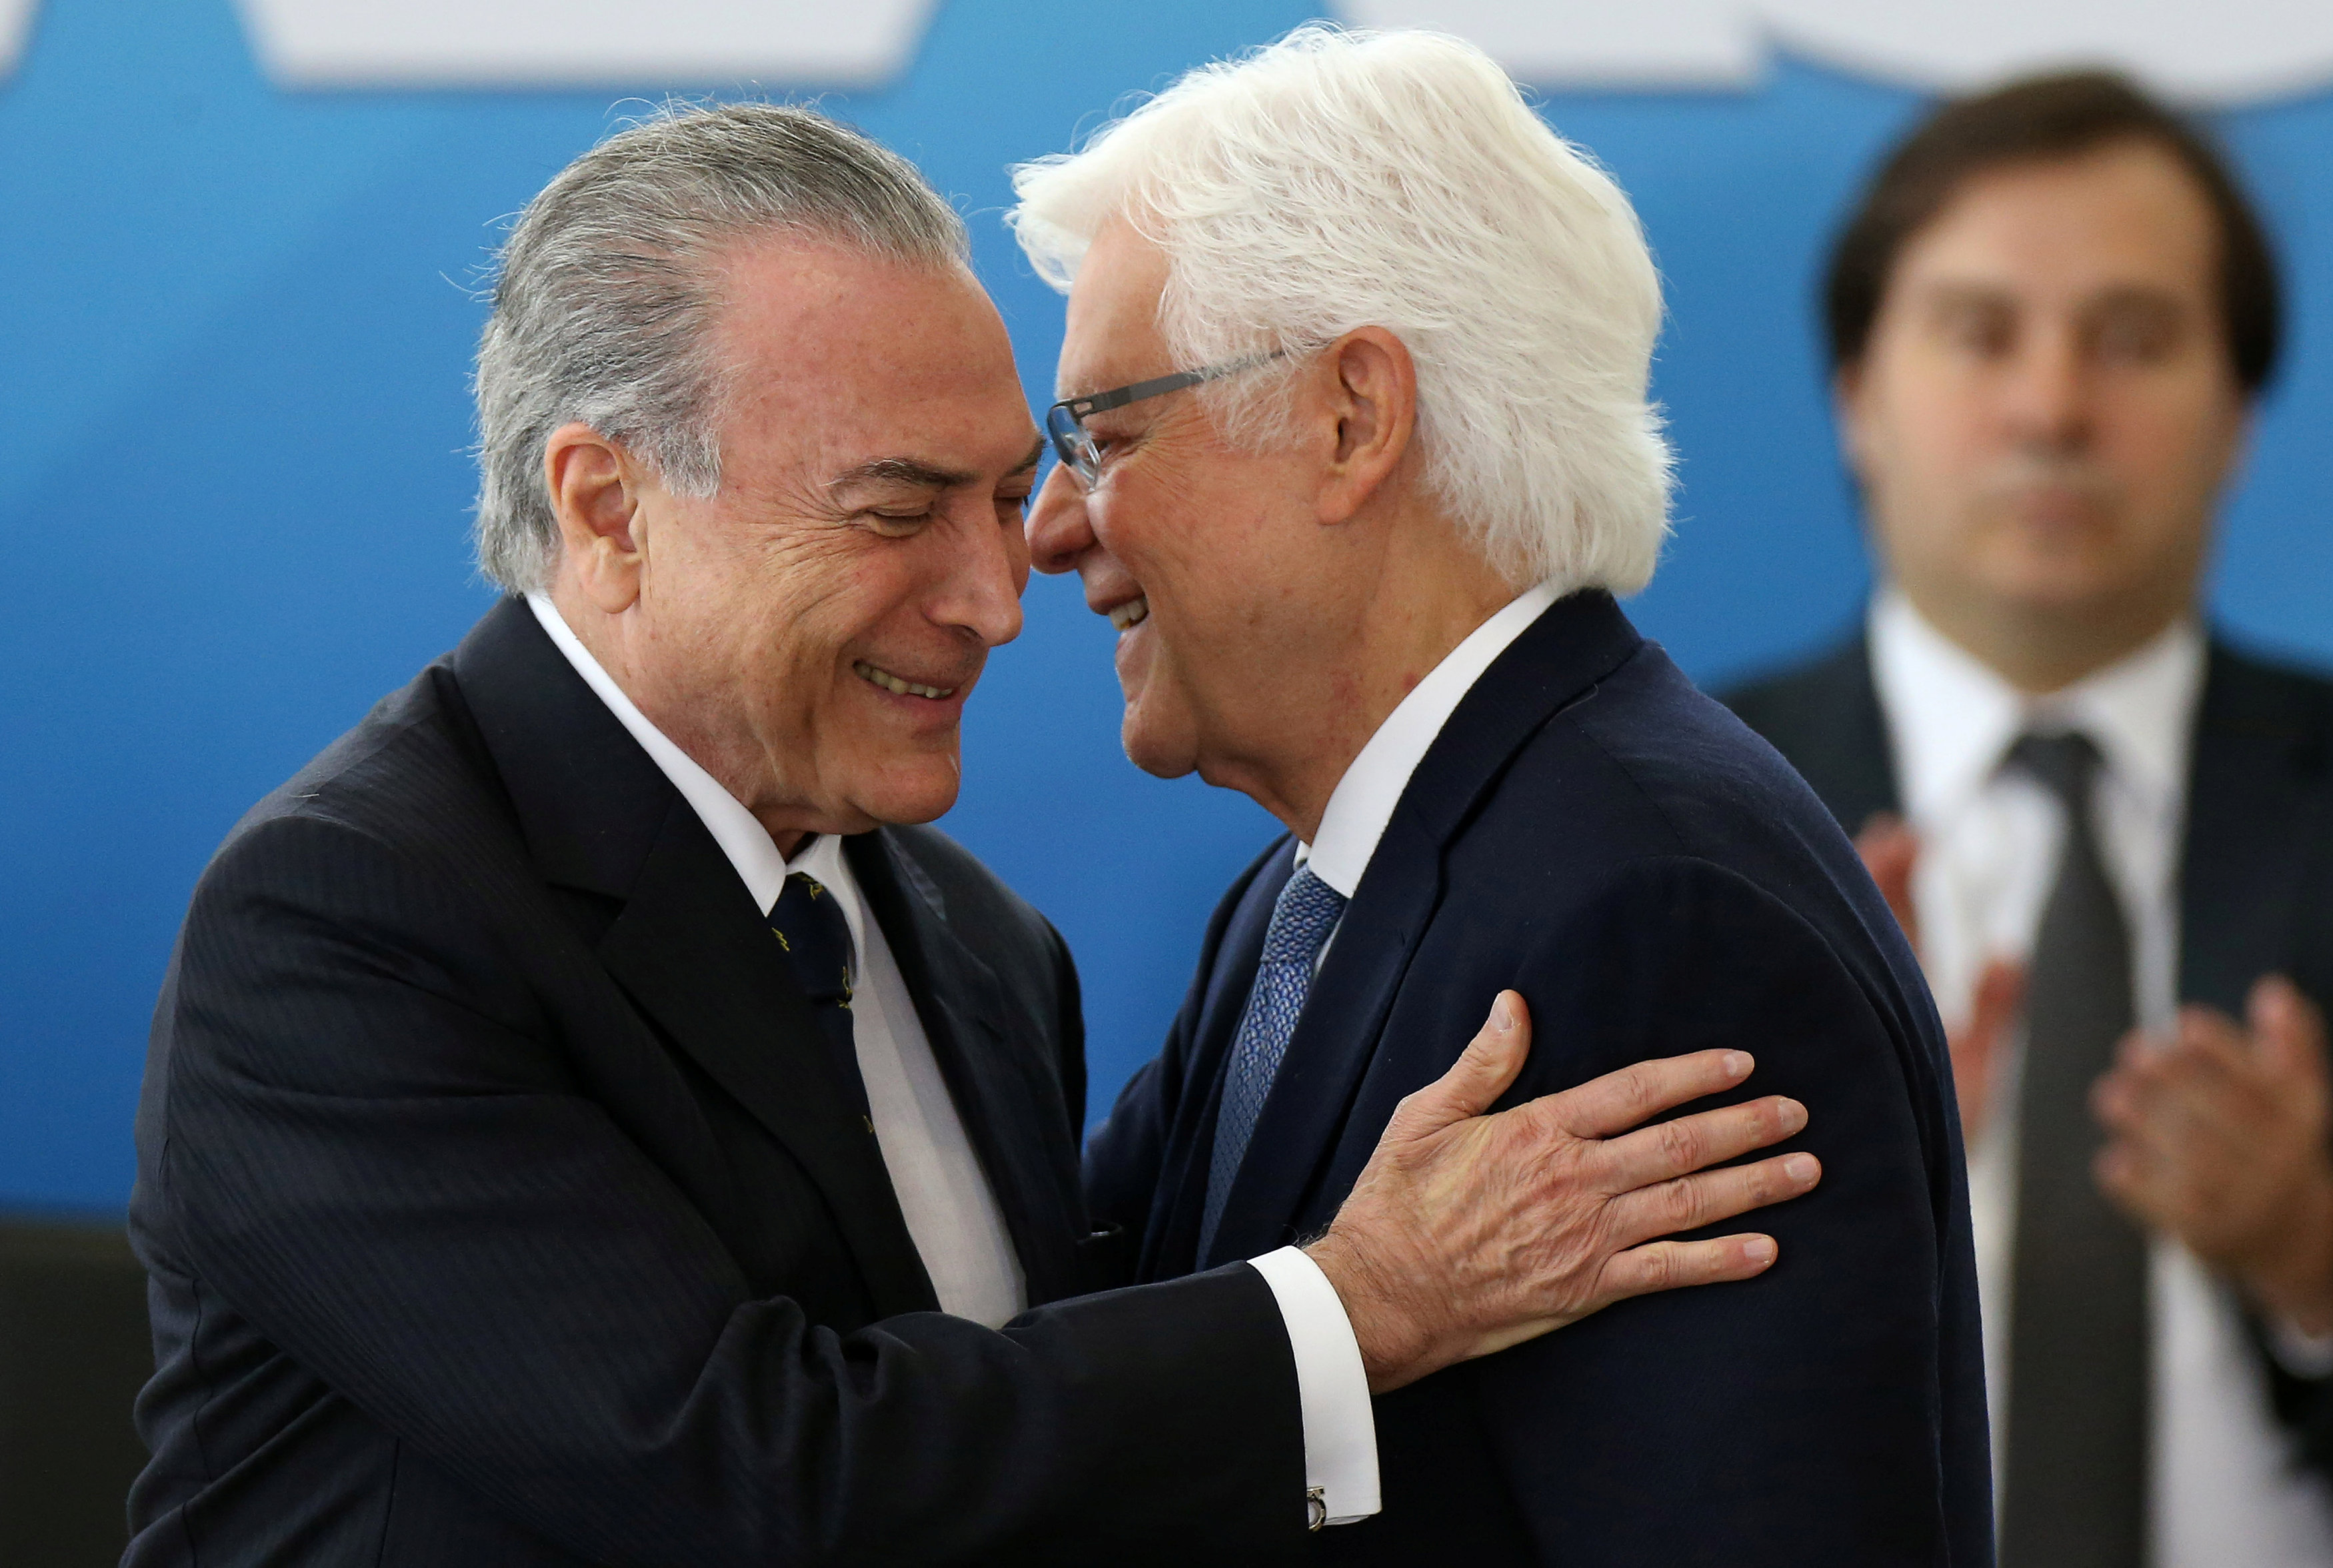 Brazil's President Michel Temer (L) greets the Minister of the General Secretary of the Presidency of Brazil, Wellington Moreira Franco during the inauguration ceremony of the Ministers, at the Planalto Palace in Brasilia, Brazil,  February 3, 2017. REUTERS/Adriano Machado     TPX IMAGES OF THE DAY